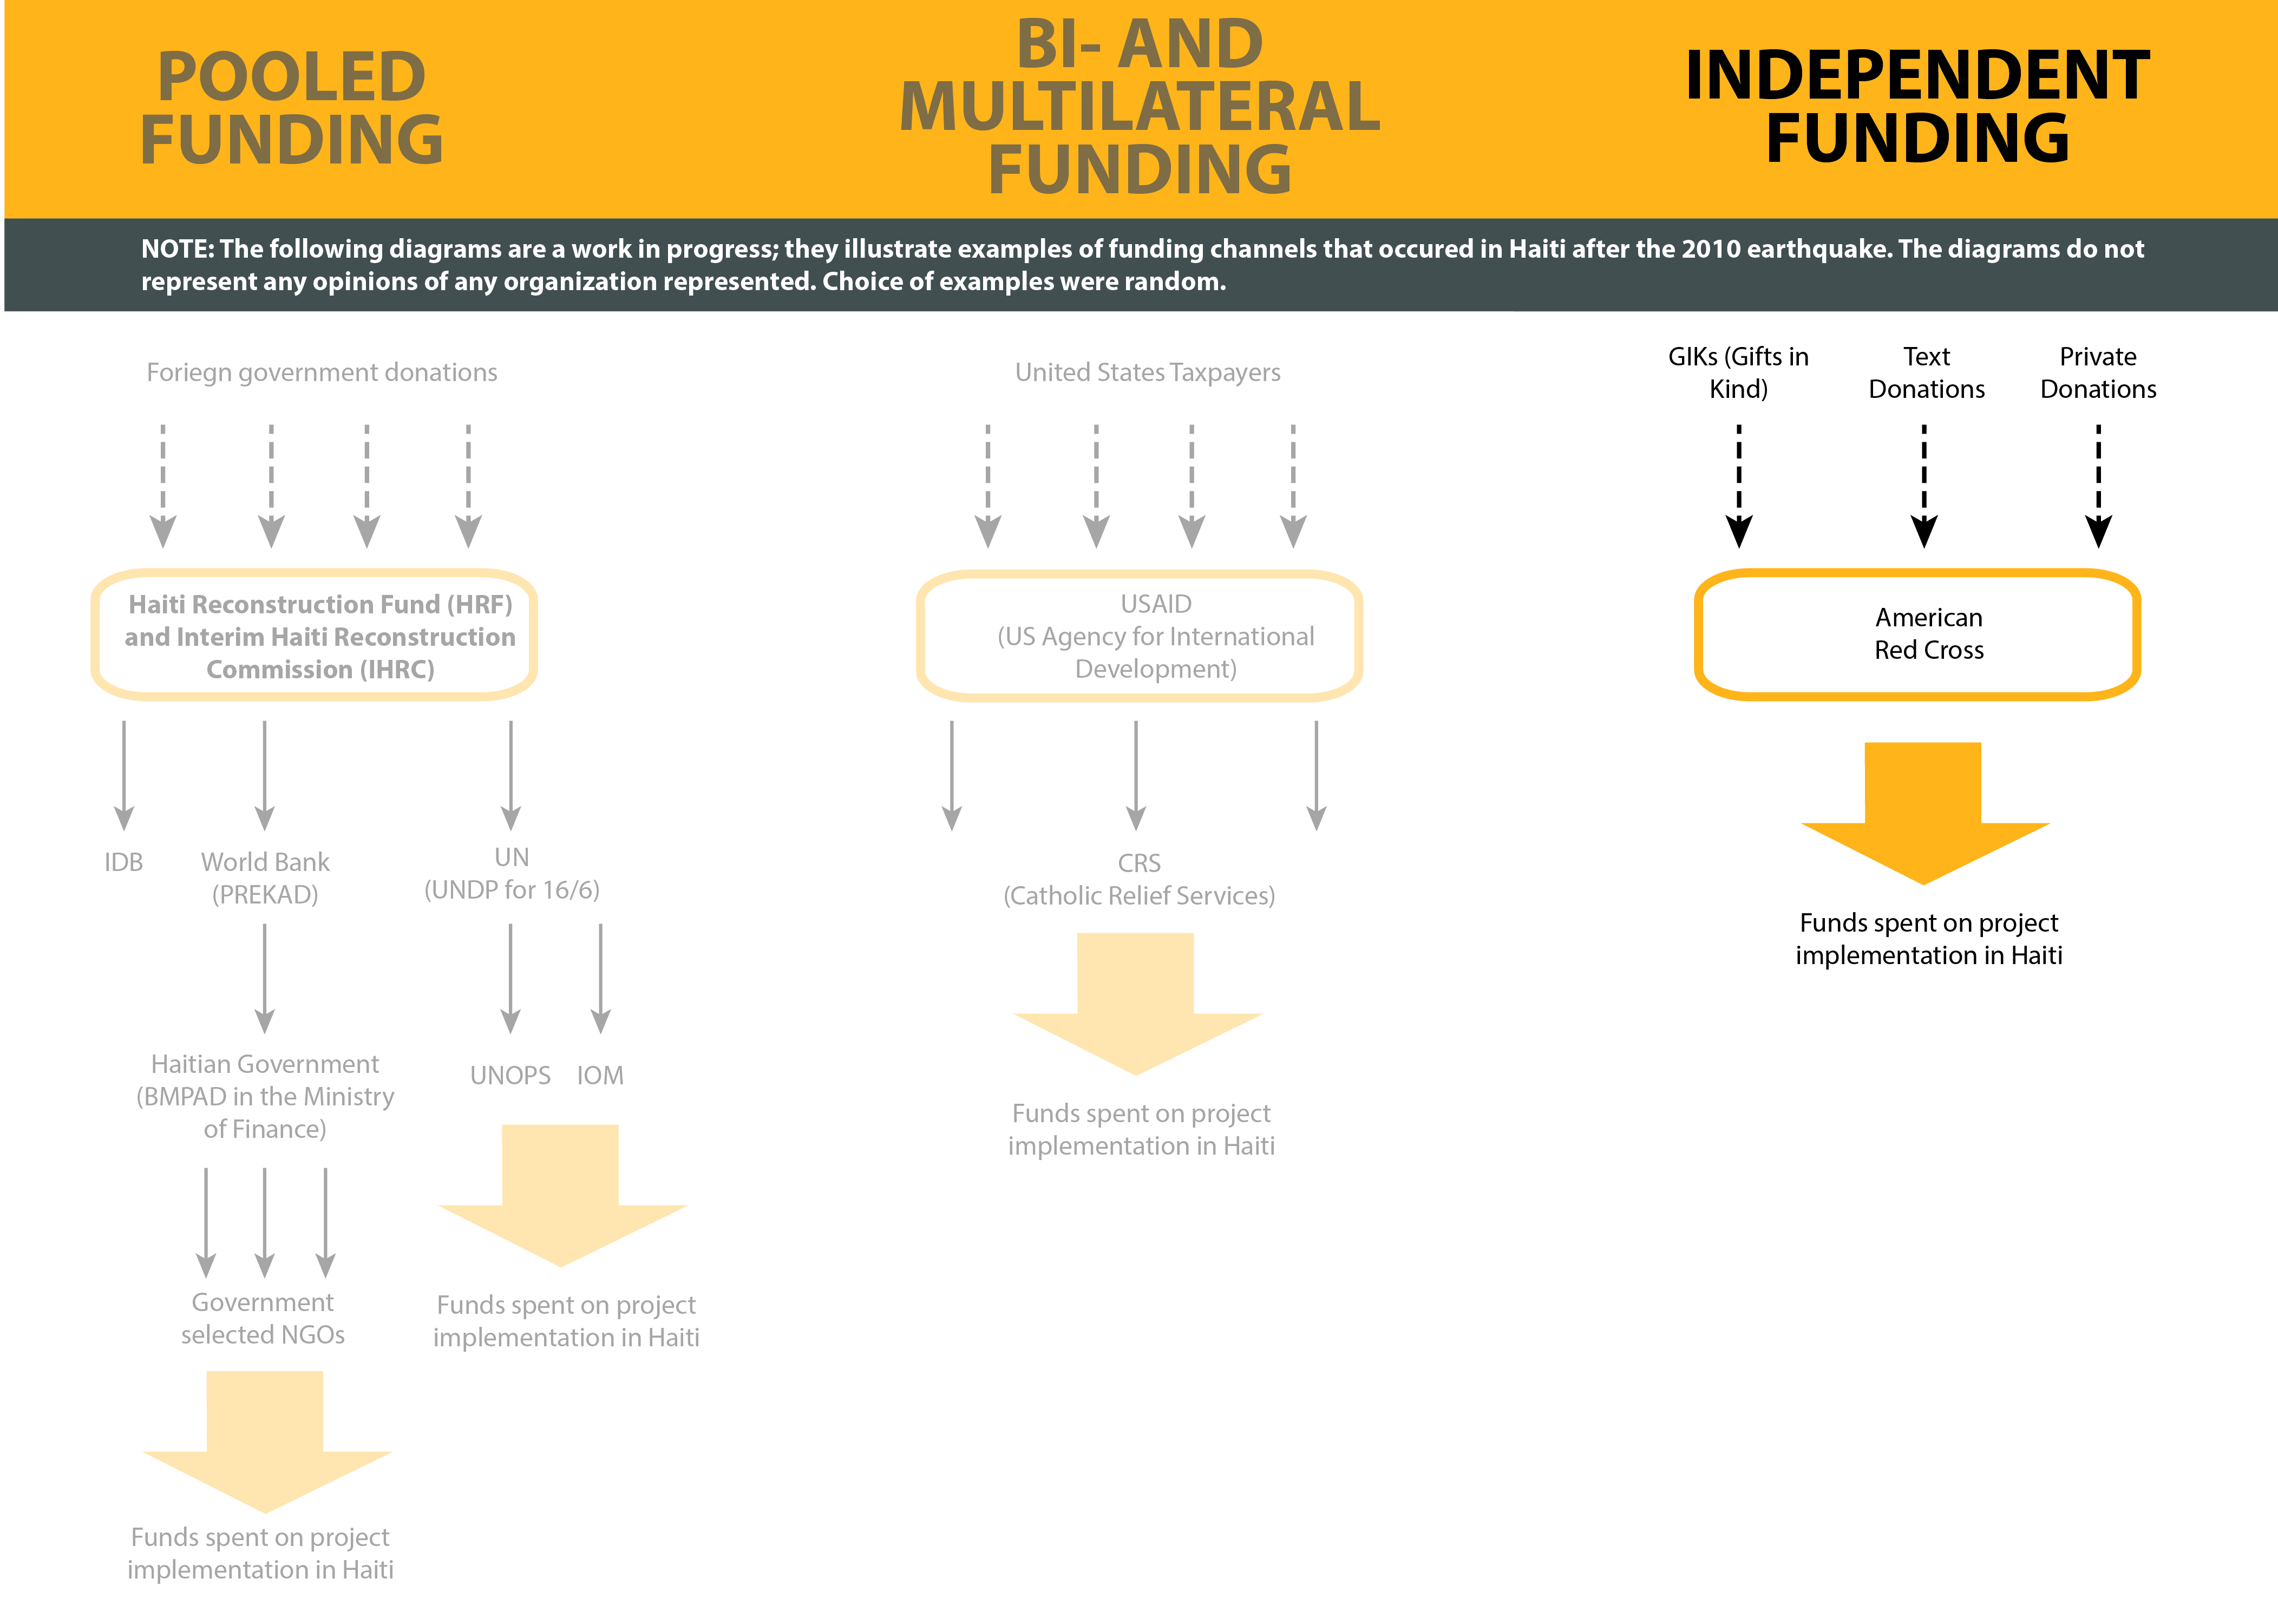 This diagram represents three broad categories of funding: (1) Pooled, (2) Bi- and Mulitlateral, and (3) Independent. Most implementing organizations receive a mix of two or all three forms.